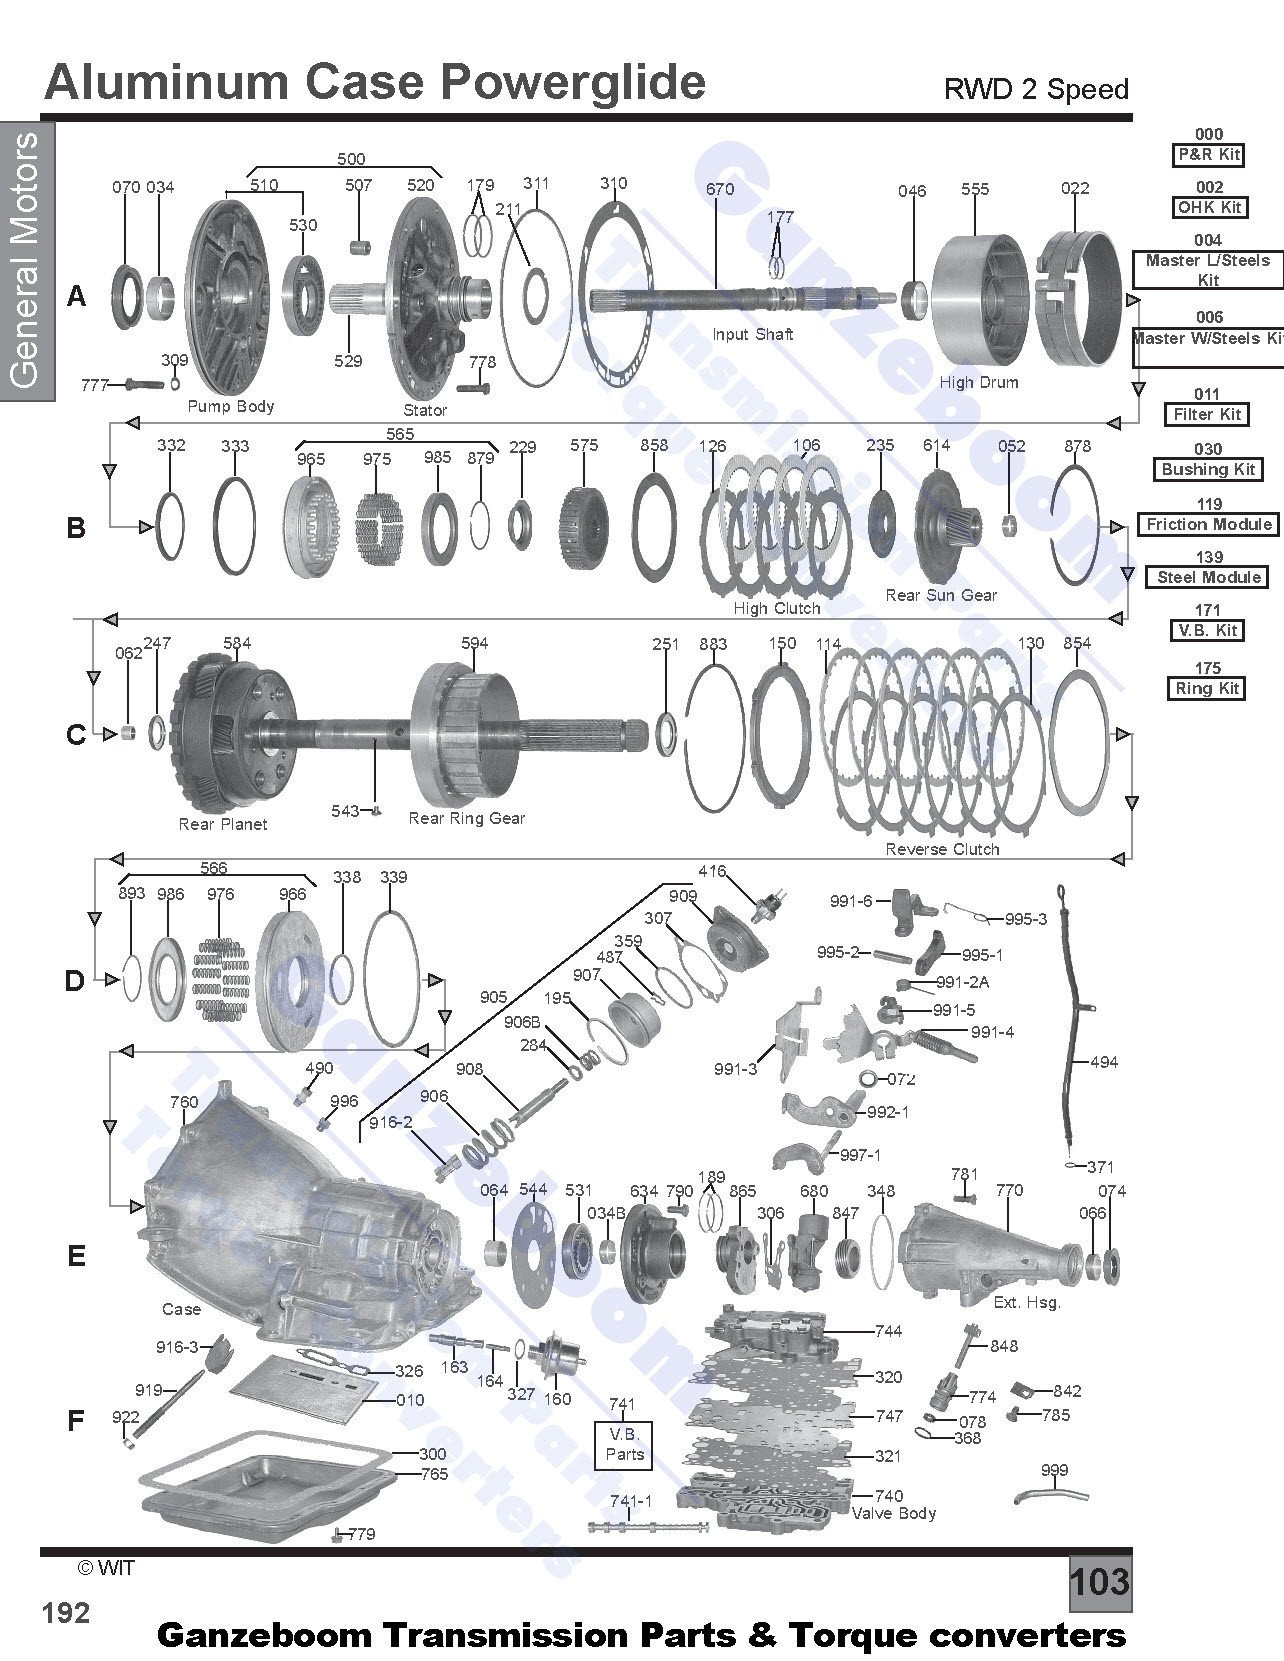 54 powerglide transmission diagram powerglide aluminium 2-speed (1962-1973)